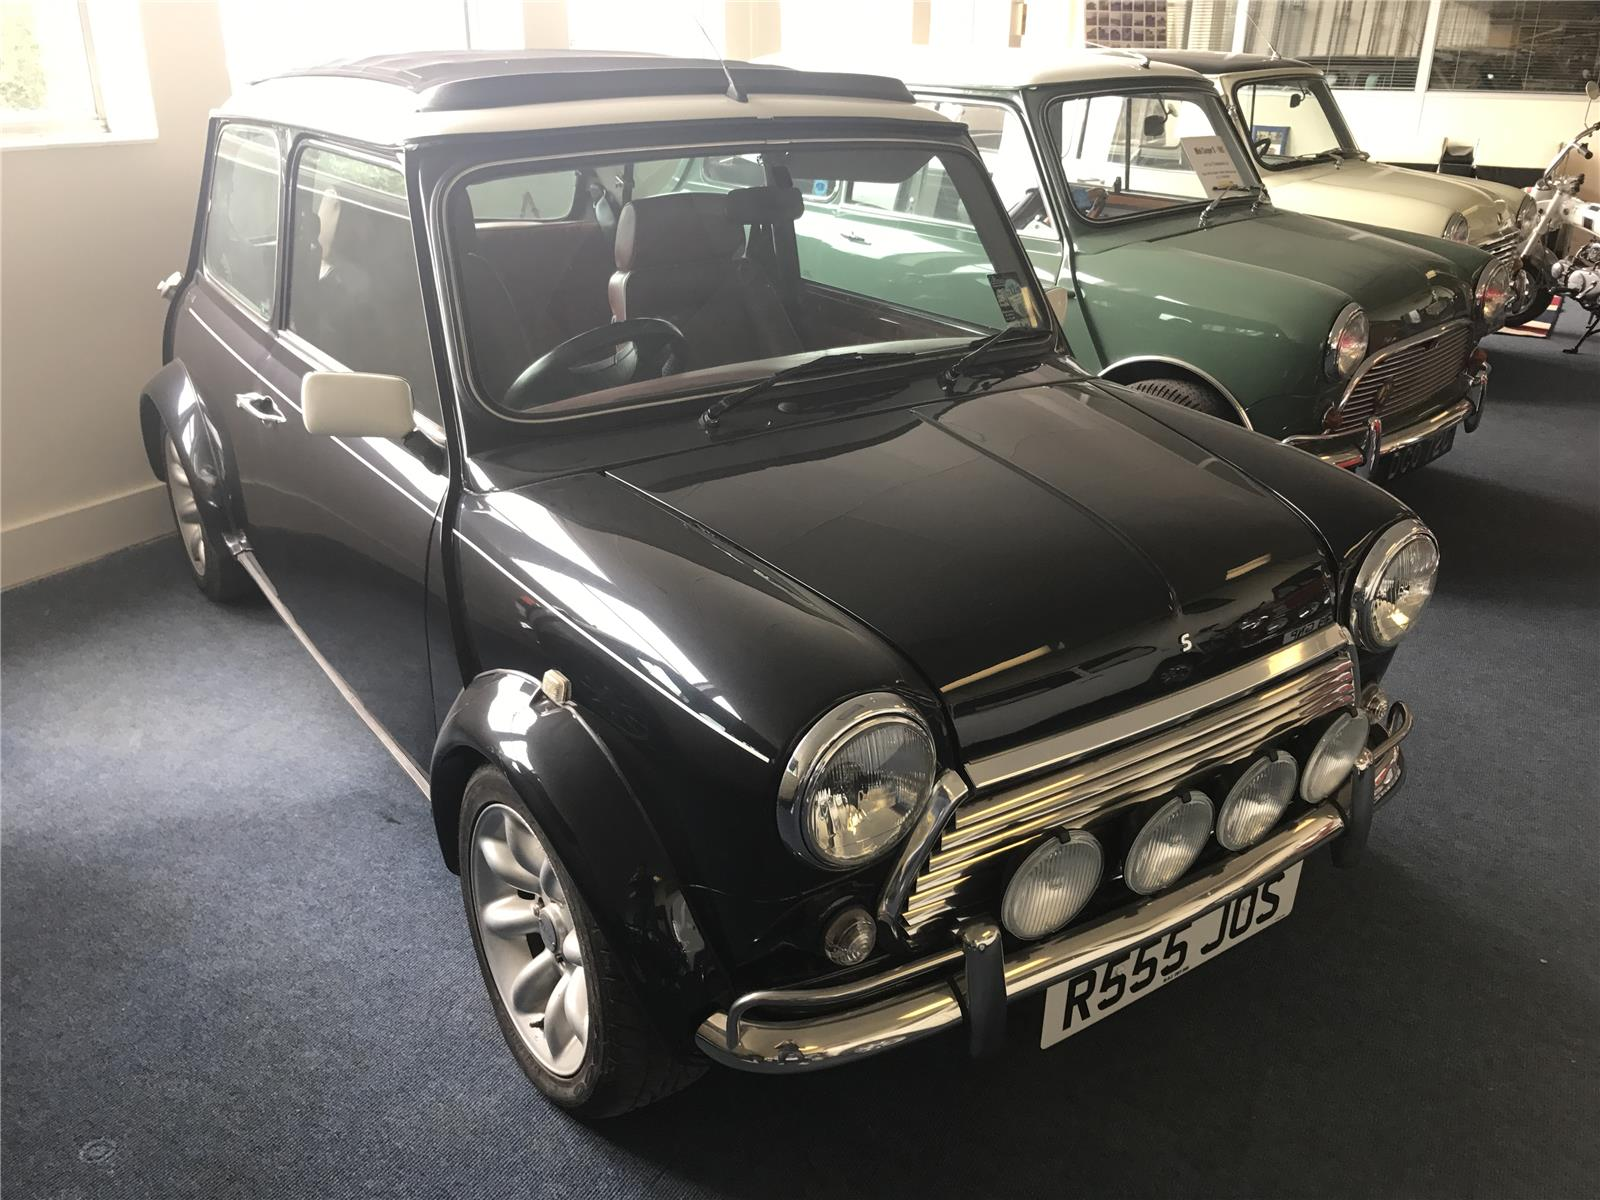 1998 ROVER MINI COOPER I 1991 On 2 DOOR SALOON